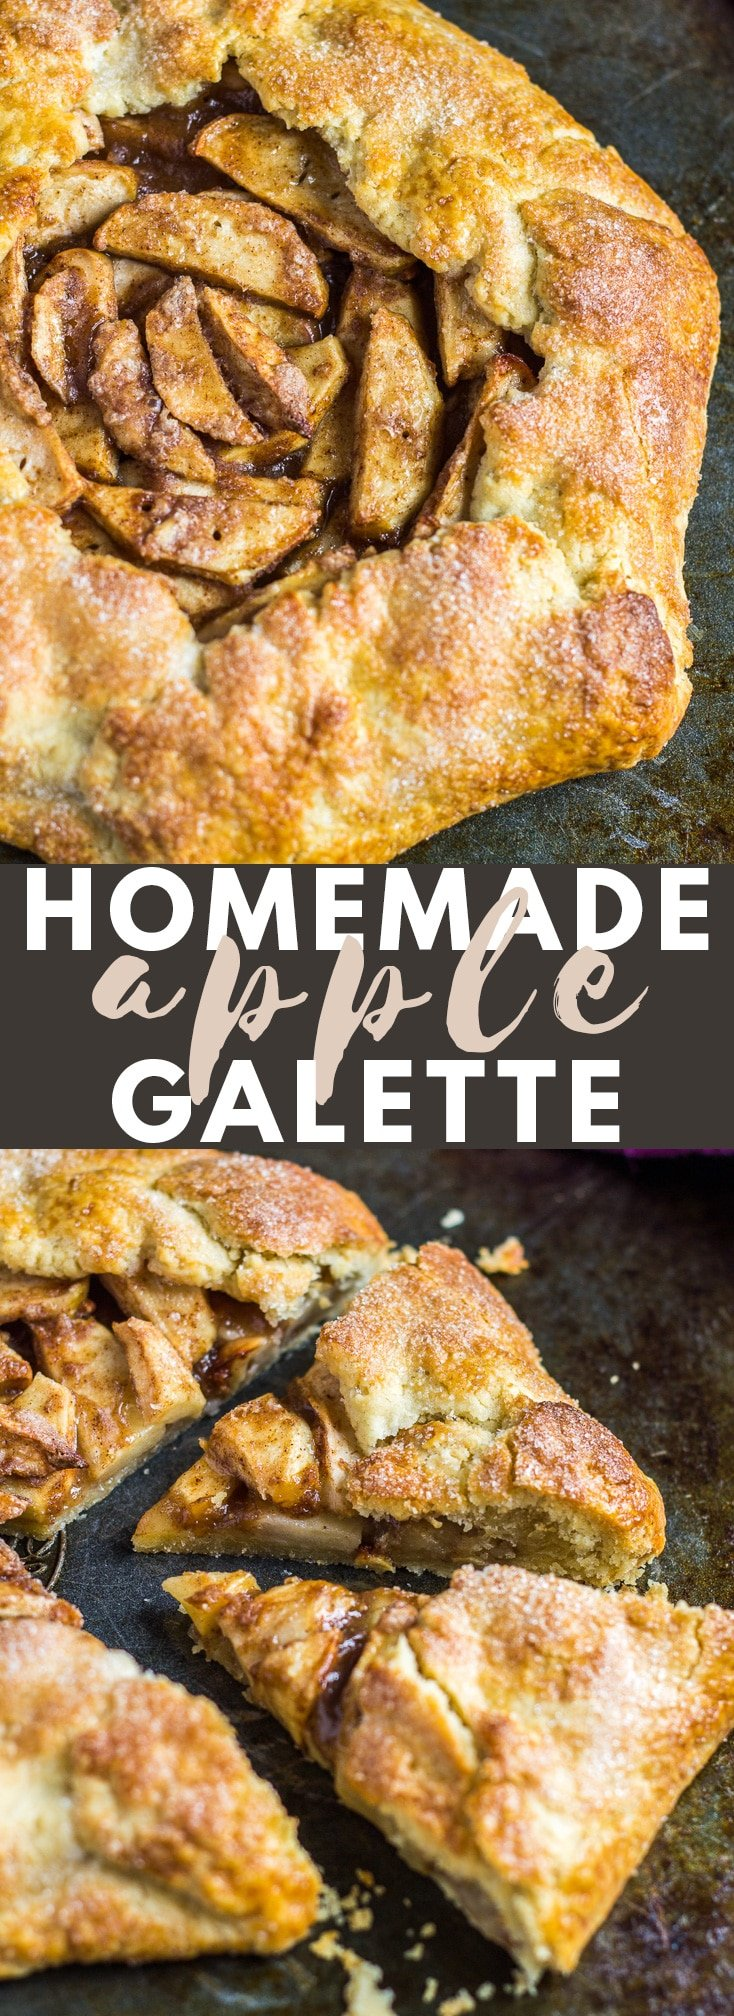 Homemade Apple Galette - A deliciously flaky, buttery pie crust filled with warm, spiced, tender apple slices. The ultimate comforting dessert! #homemade #apple #galette #recipe